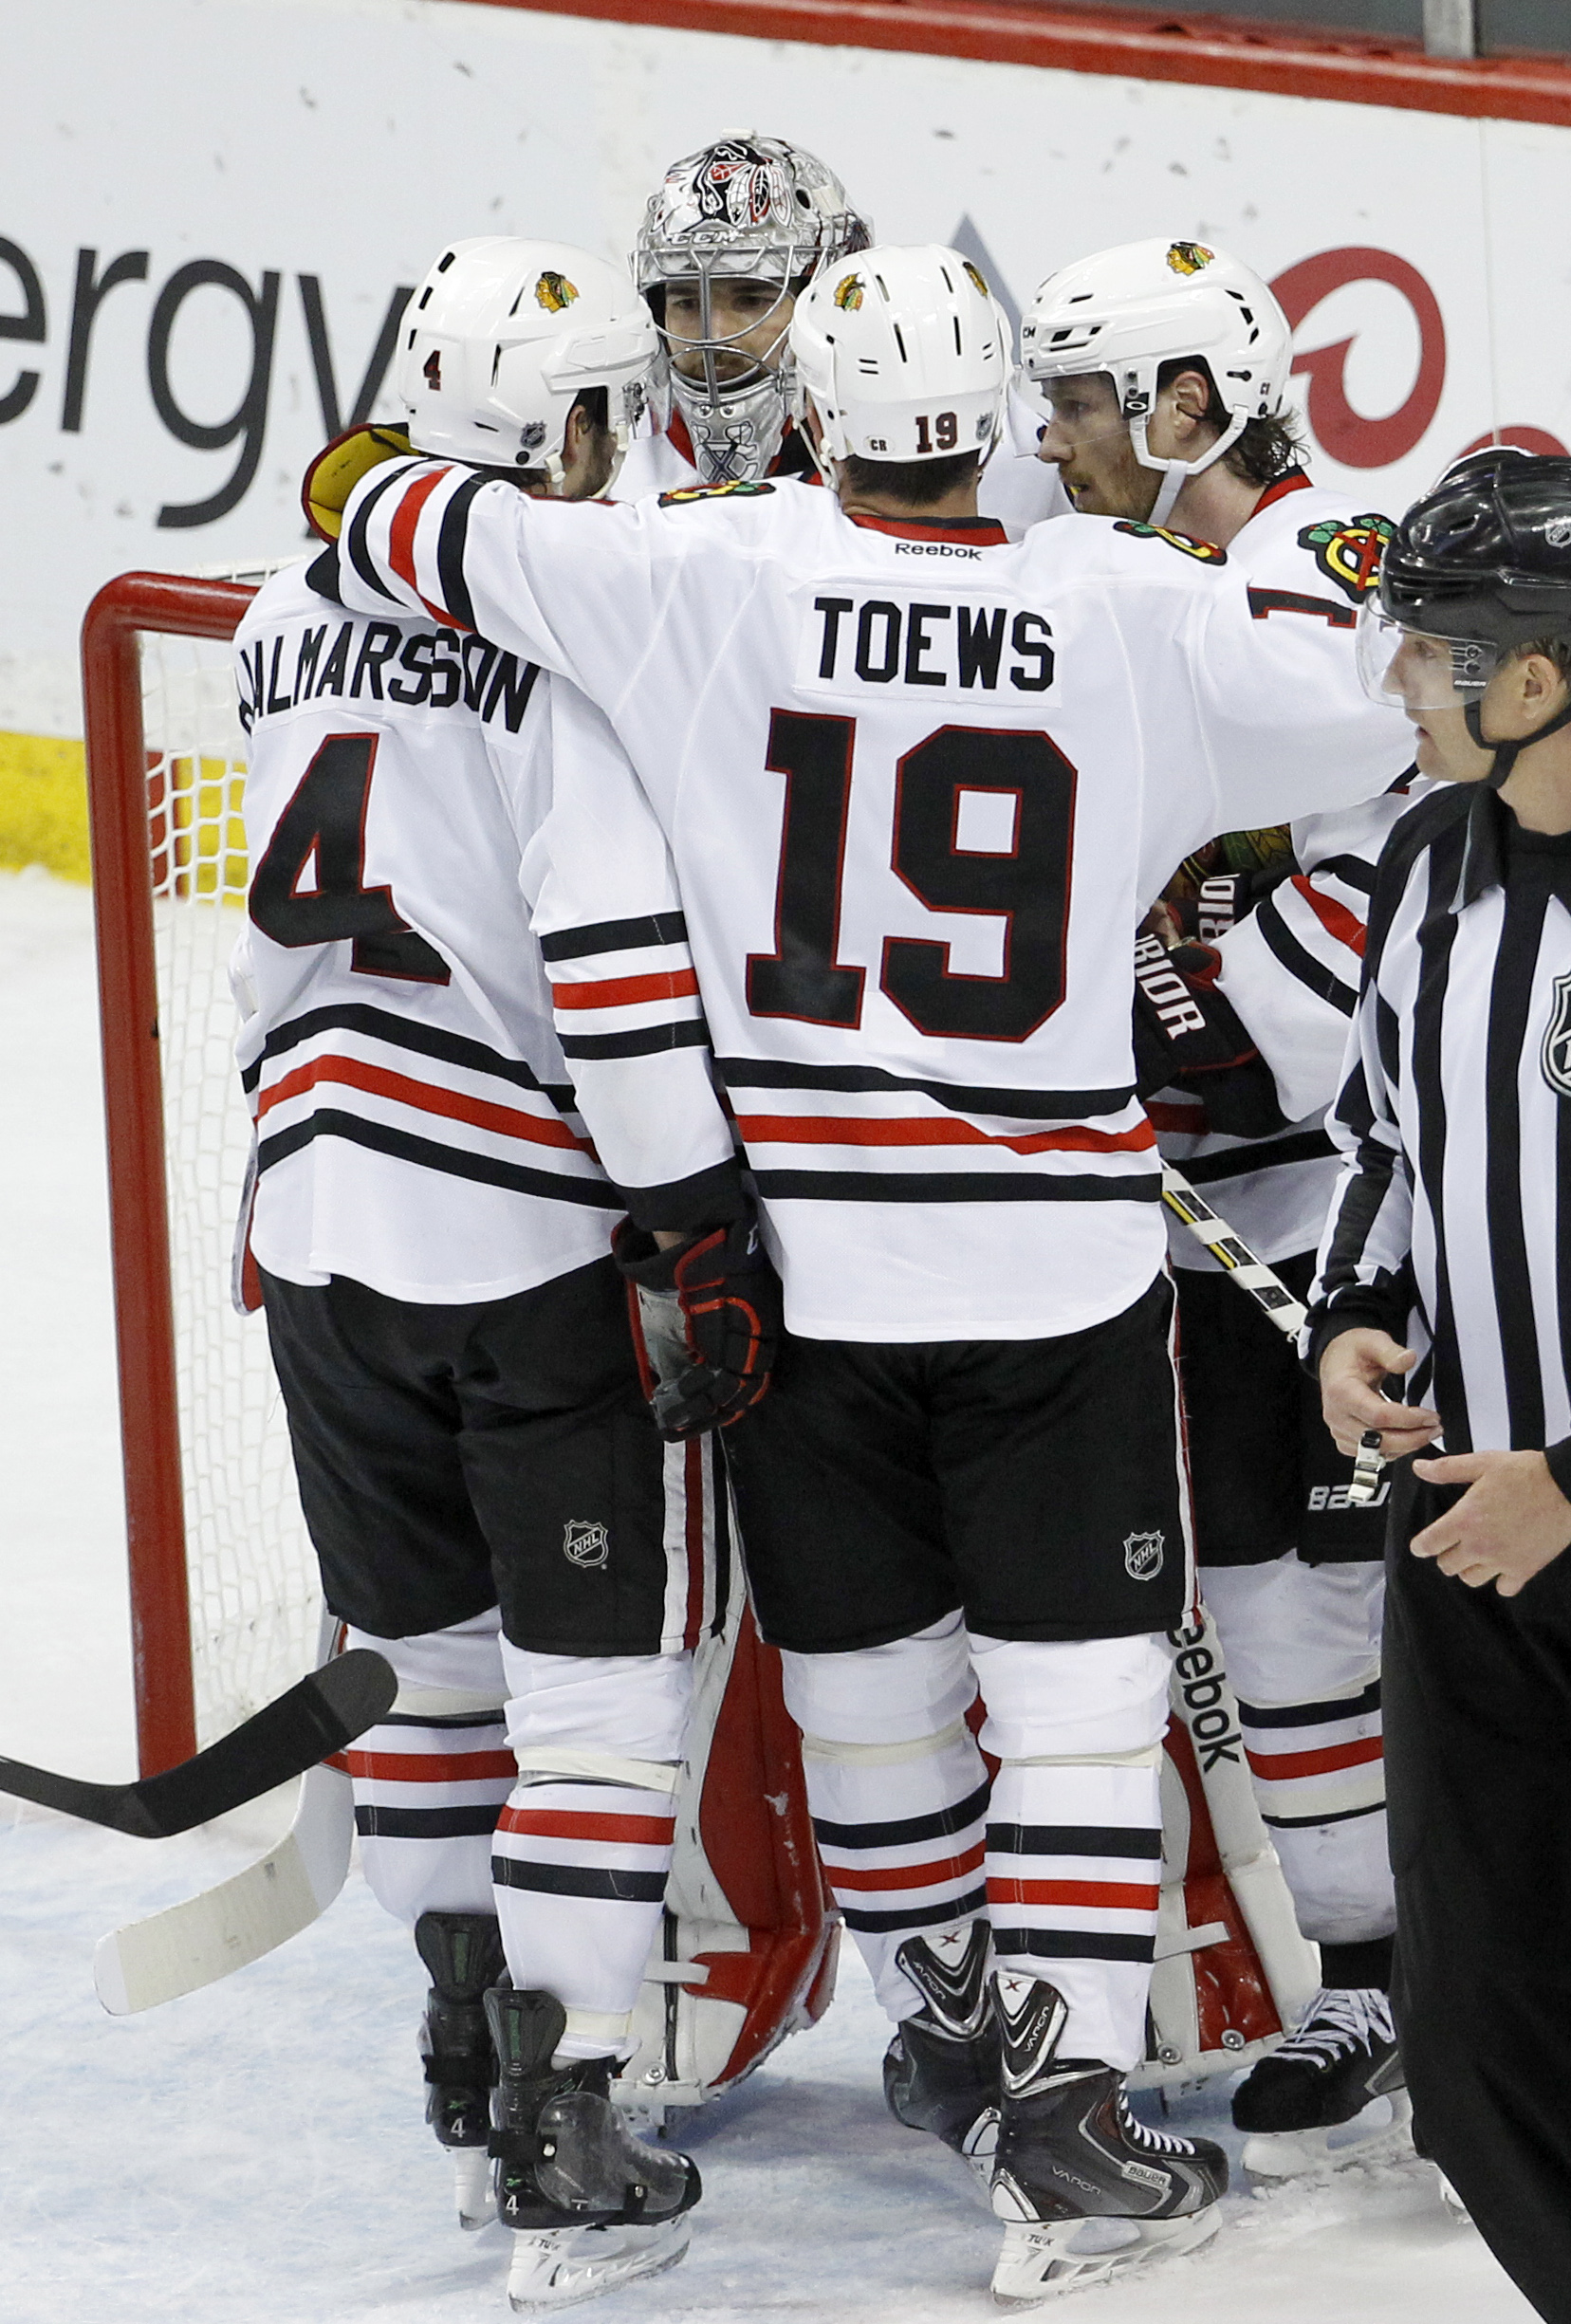 Chicago Blackhawks center Jonathan Toews (19), defenseman Niklas Hjalmarsson, left, of Sweden, and defenseman Duncan Keith, right, congratulate goalie Corey Crawford after the Blackhawks defeated the Minnesota Wild 4-3 in Game 4 in the second round of the